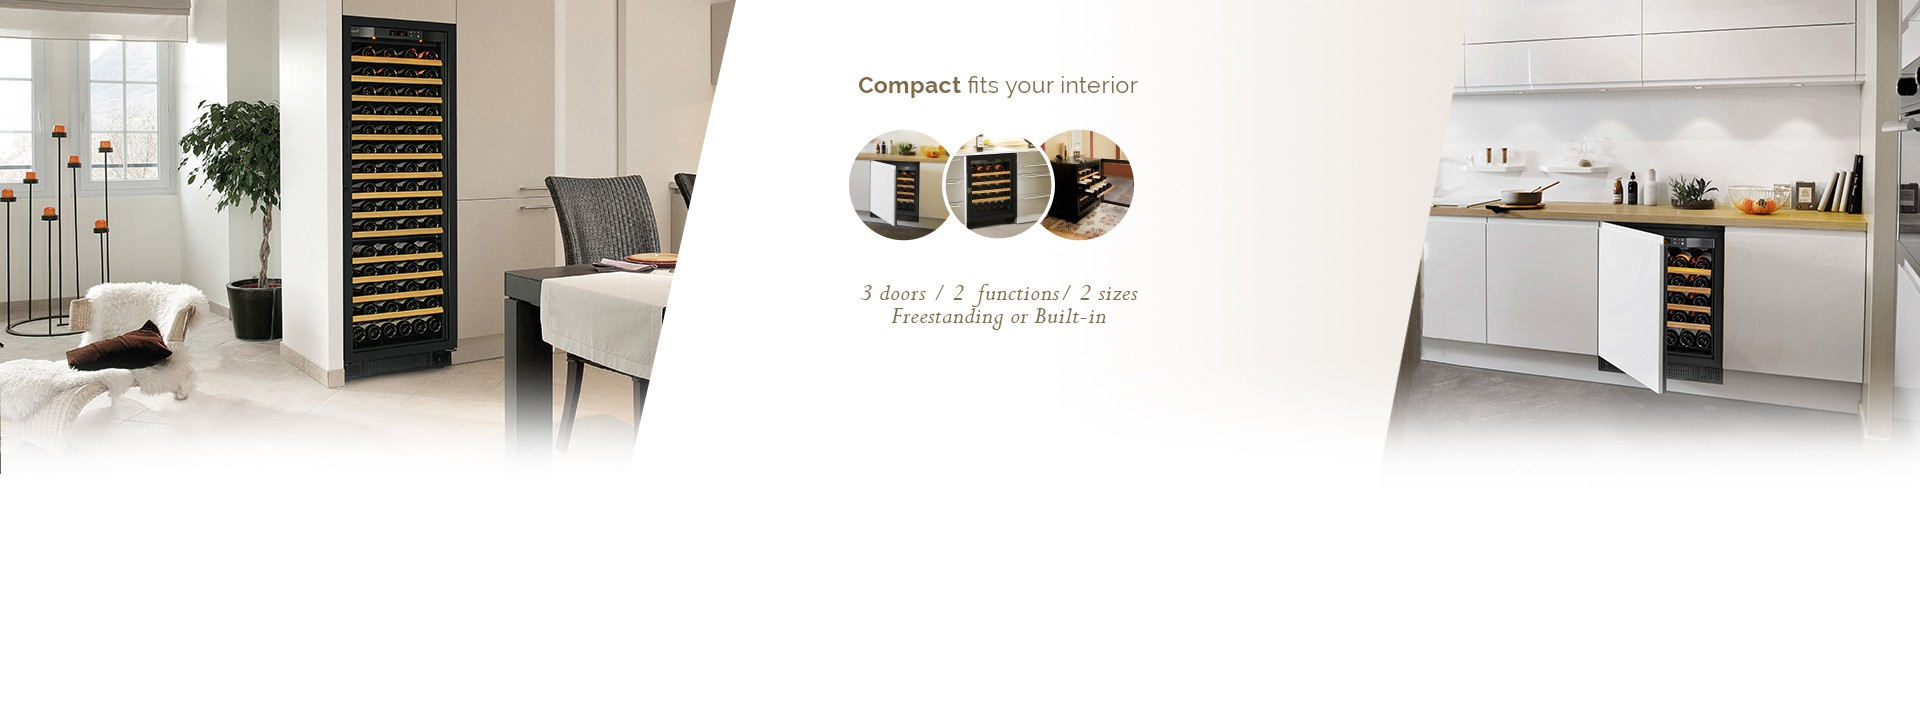 Ageing or service, flush-fitted or freestanding, Compact perfectly fits your interior. Discover it!